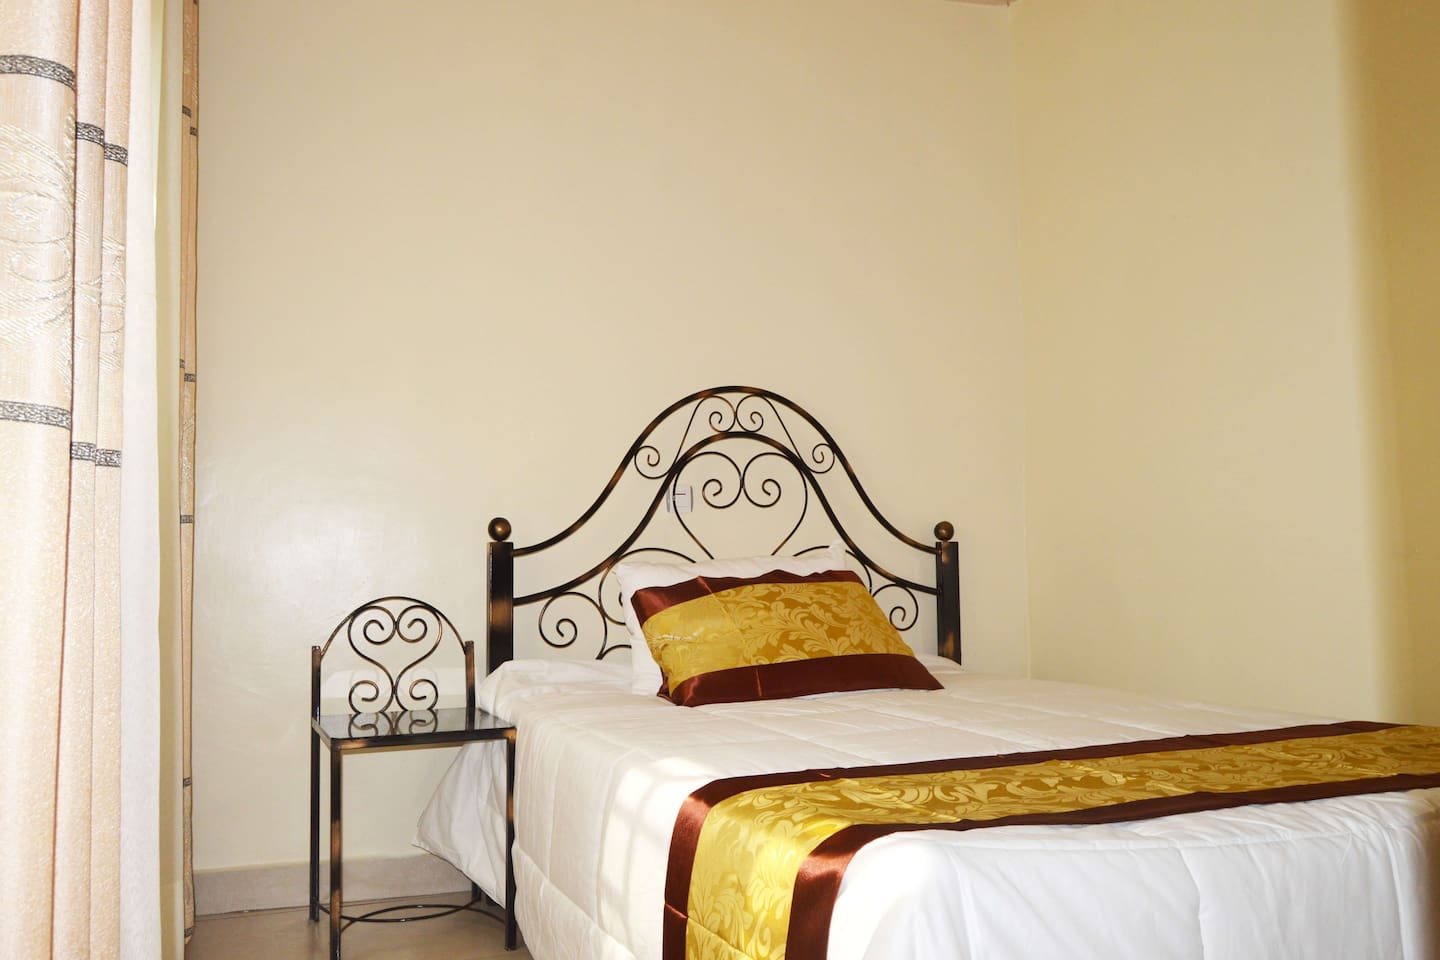 The right place to stay for your night in Kigali.